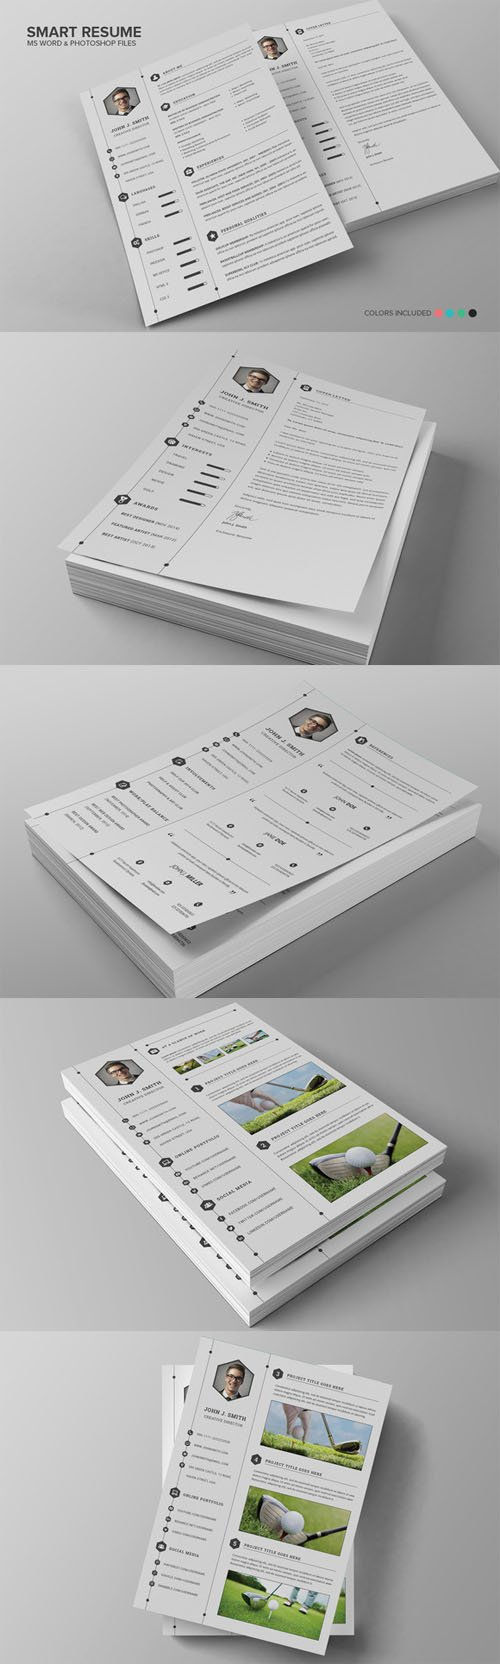 Creativemarket - Smart Resume CV Set 136529